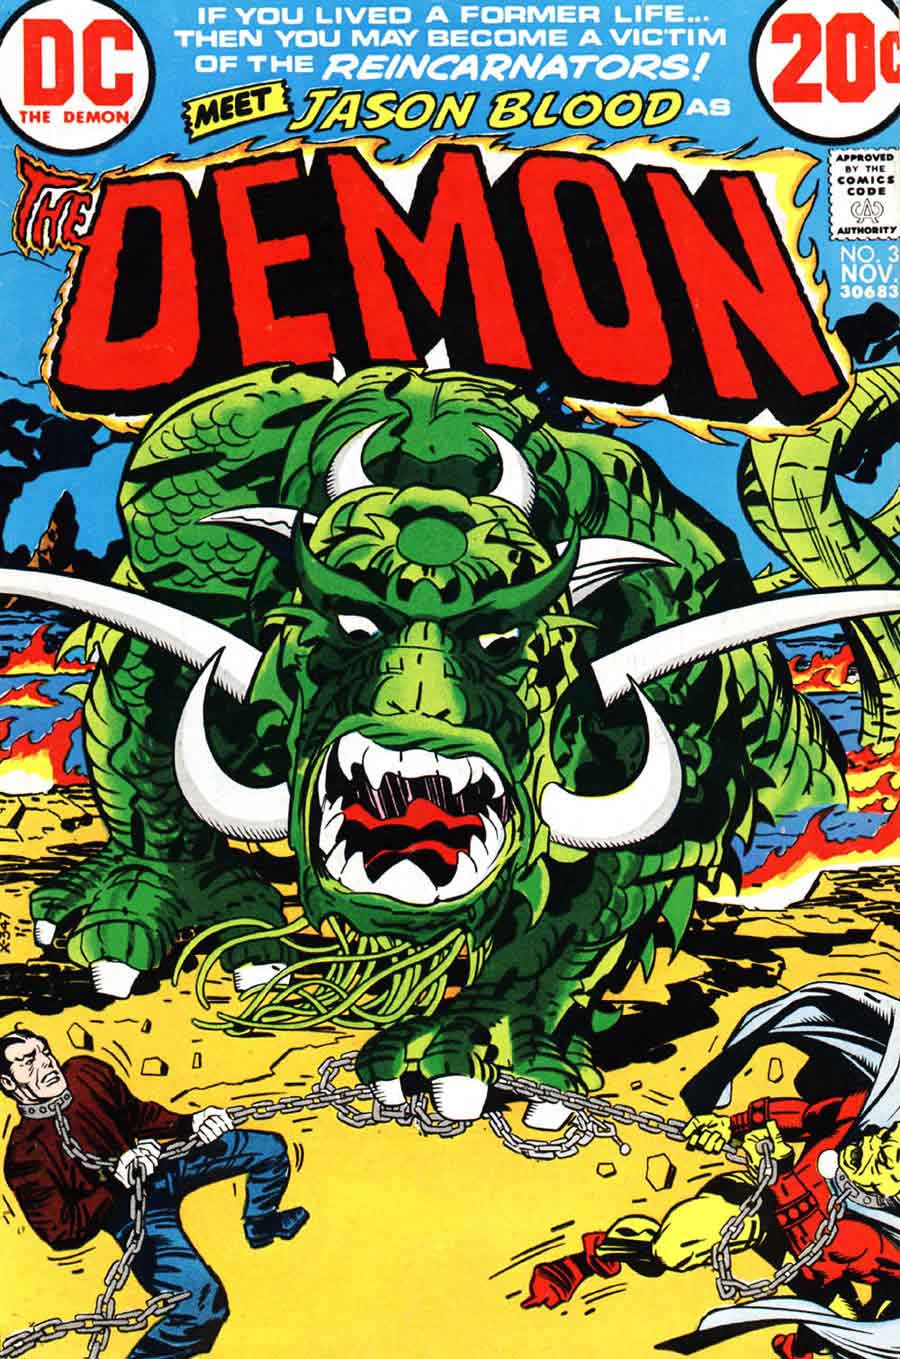 Demon v1 #3 dc bronze age comic book cover art by Jack Kirby